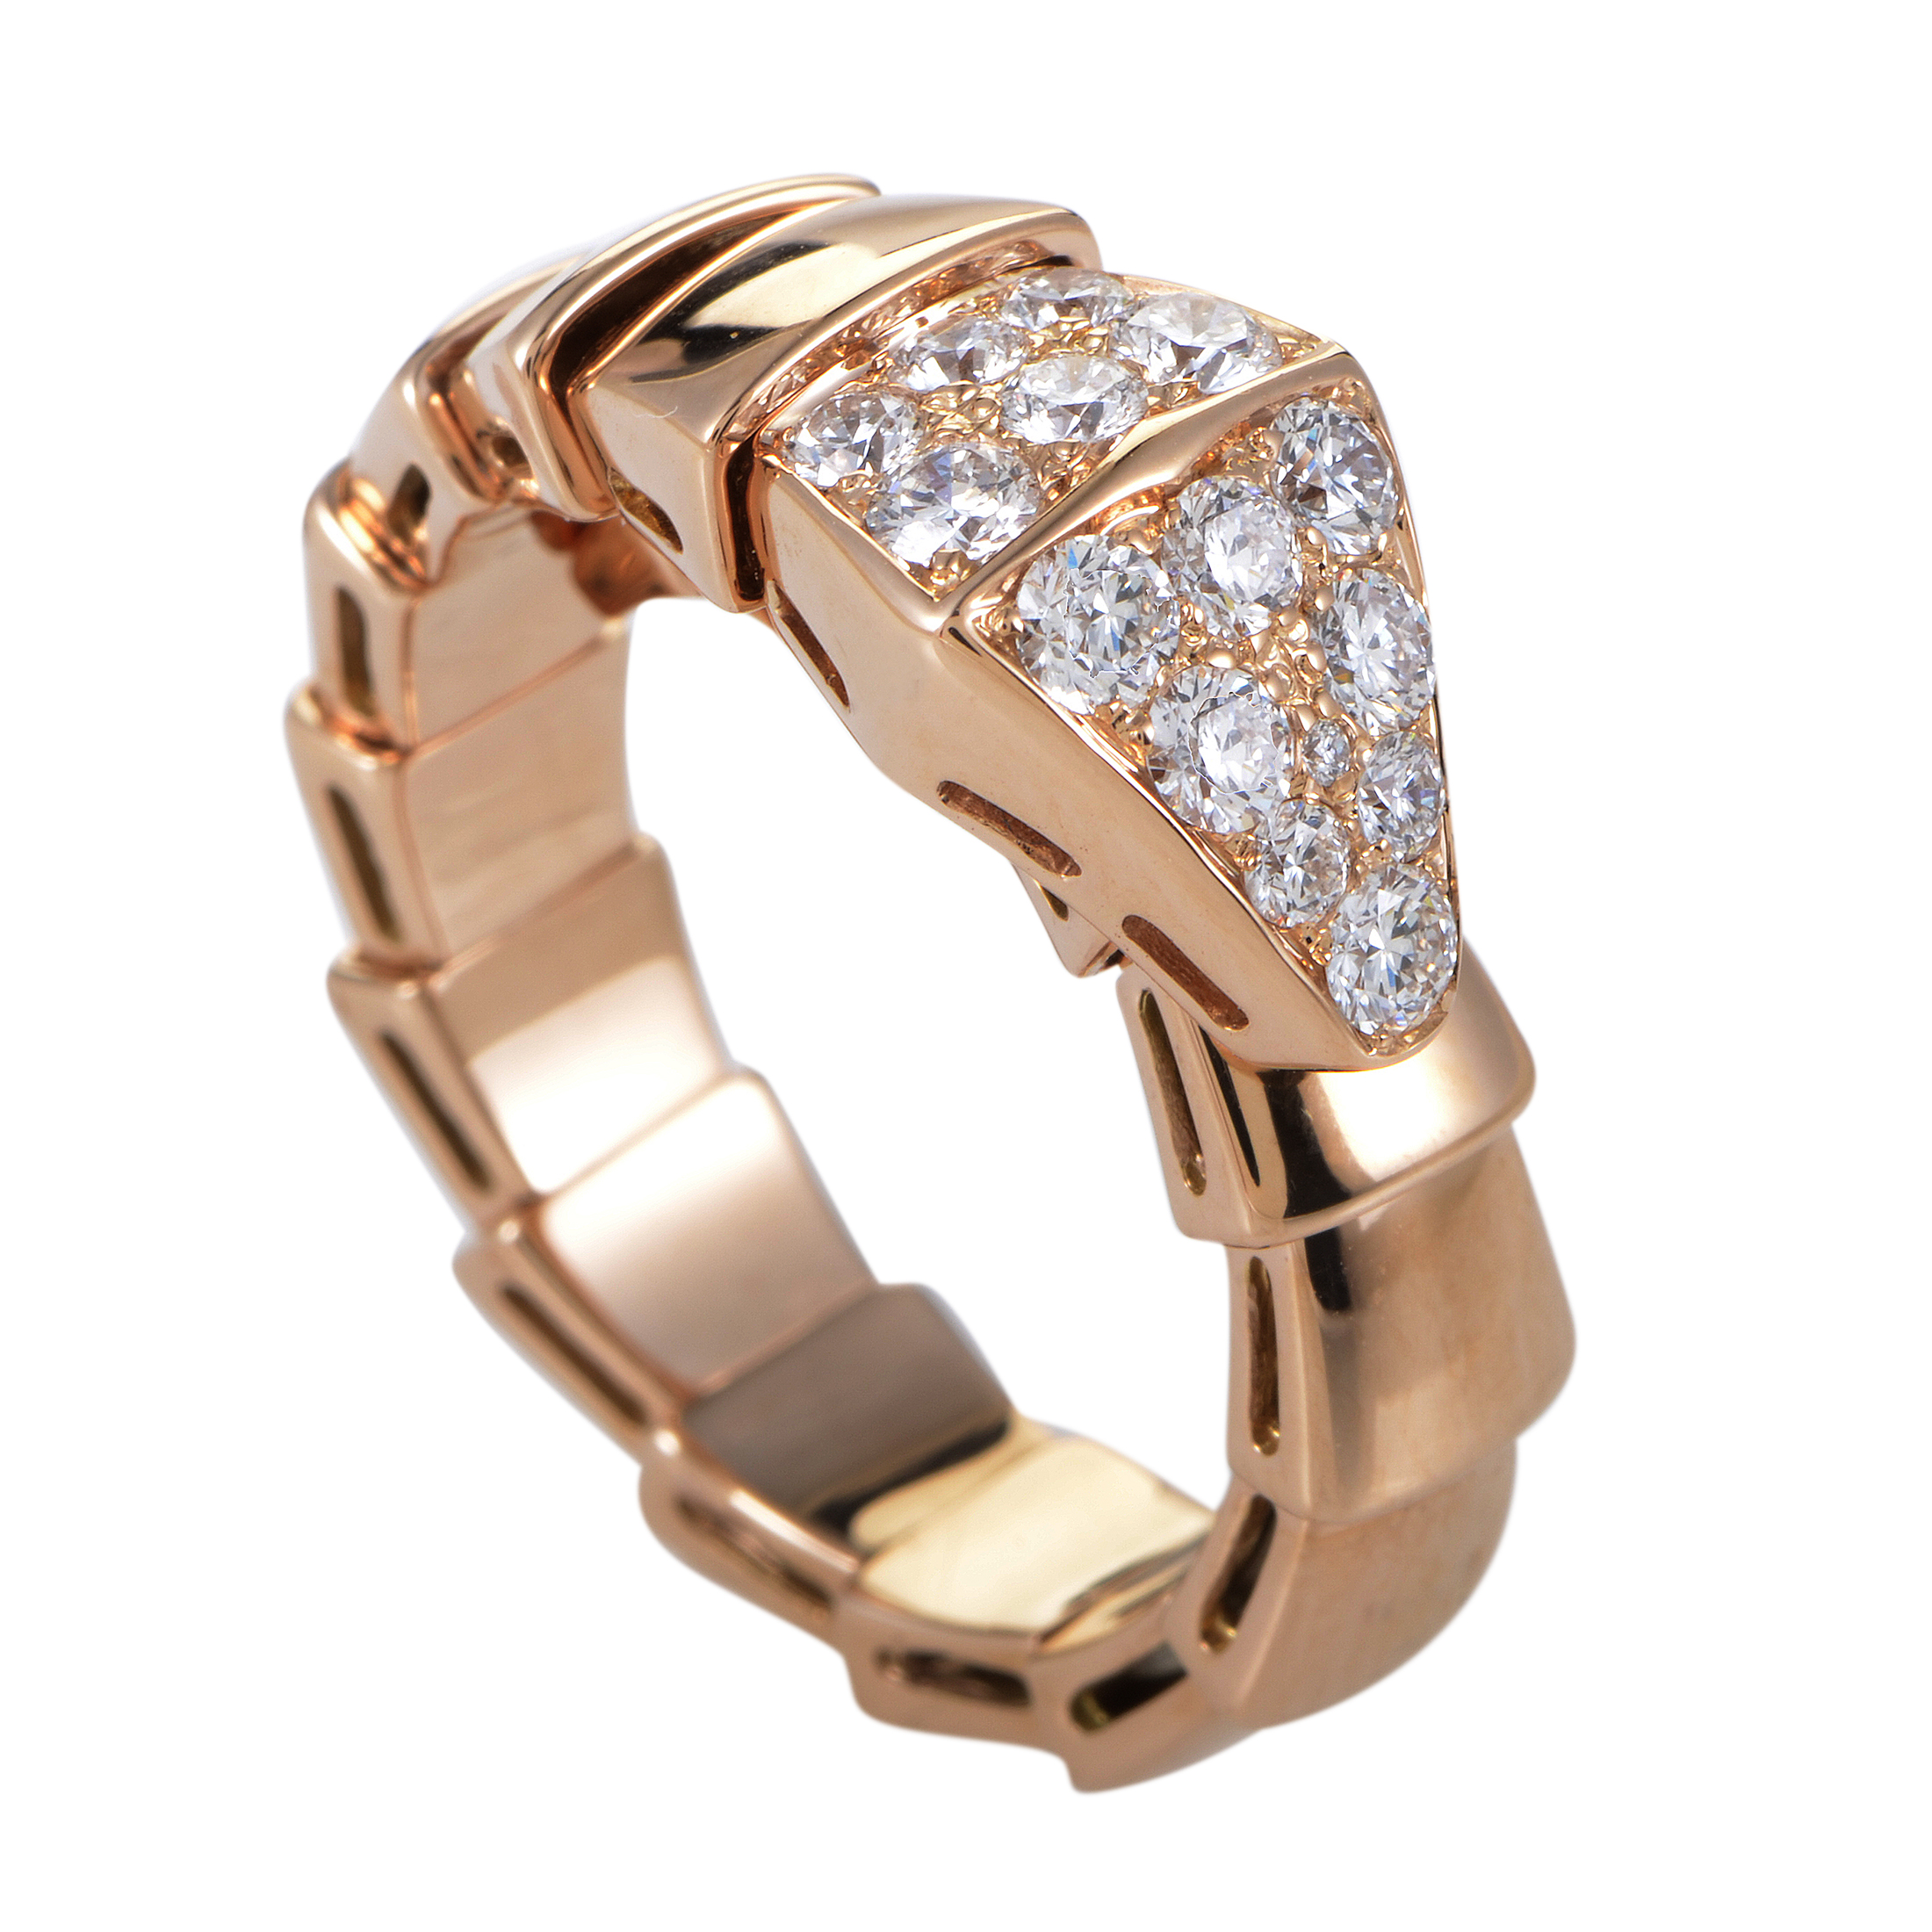 Serpenti Womens 18K Rose Gold Partial Diamond Pave Ring